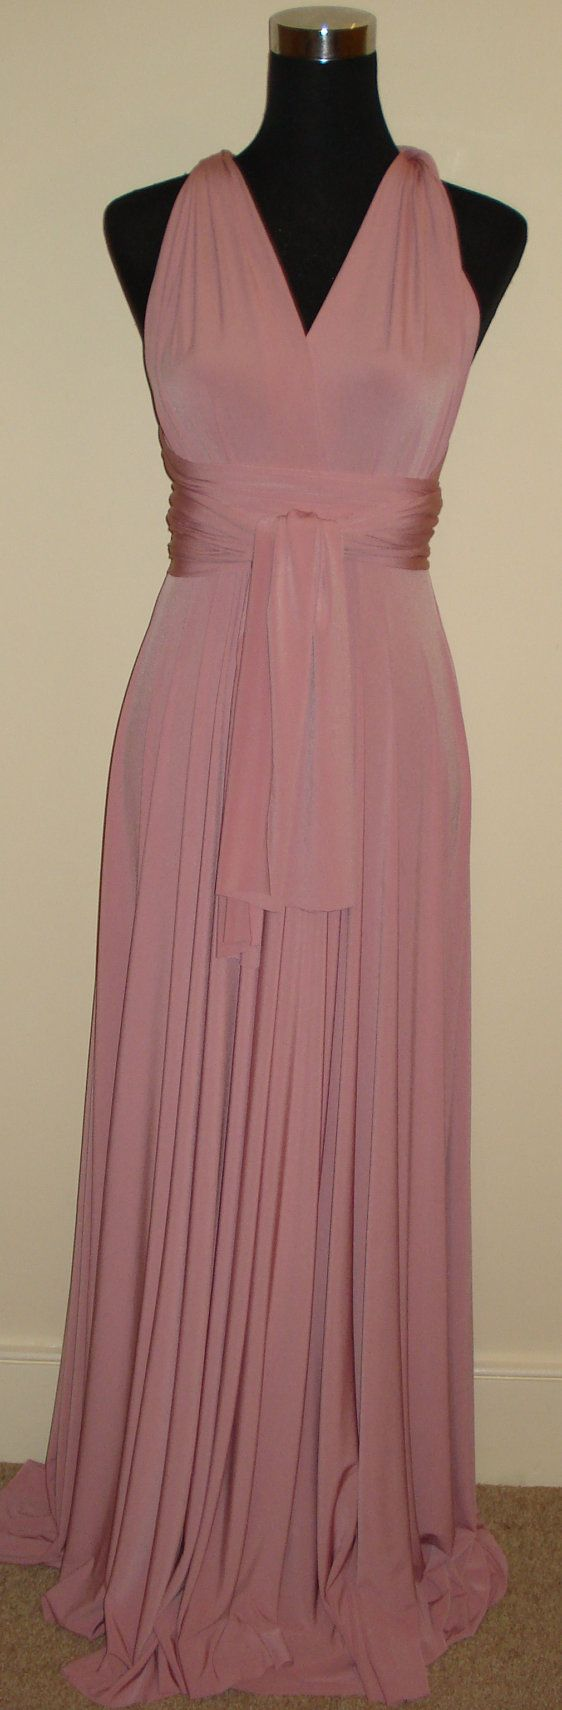 Soft Touch dusky pink floor length infinity multiway convertible wrap bridesmaid/wedding/formal/evening wear dress